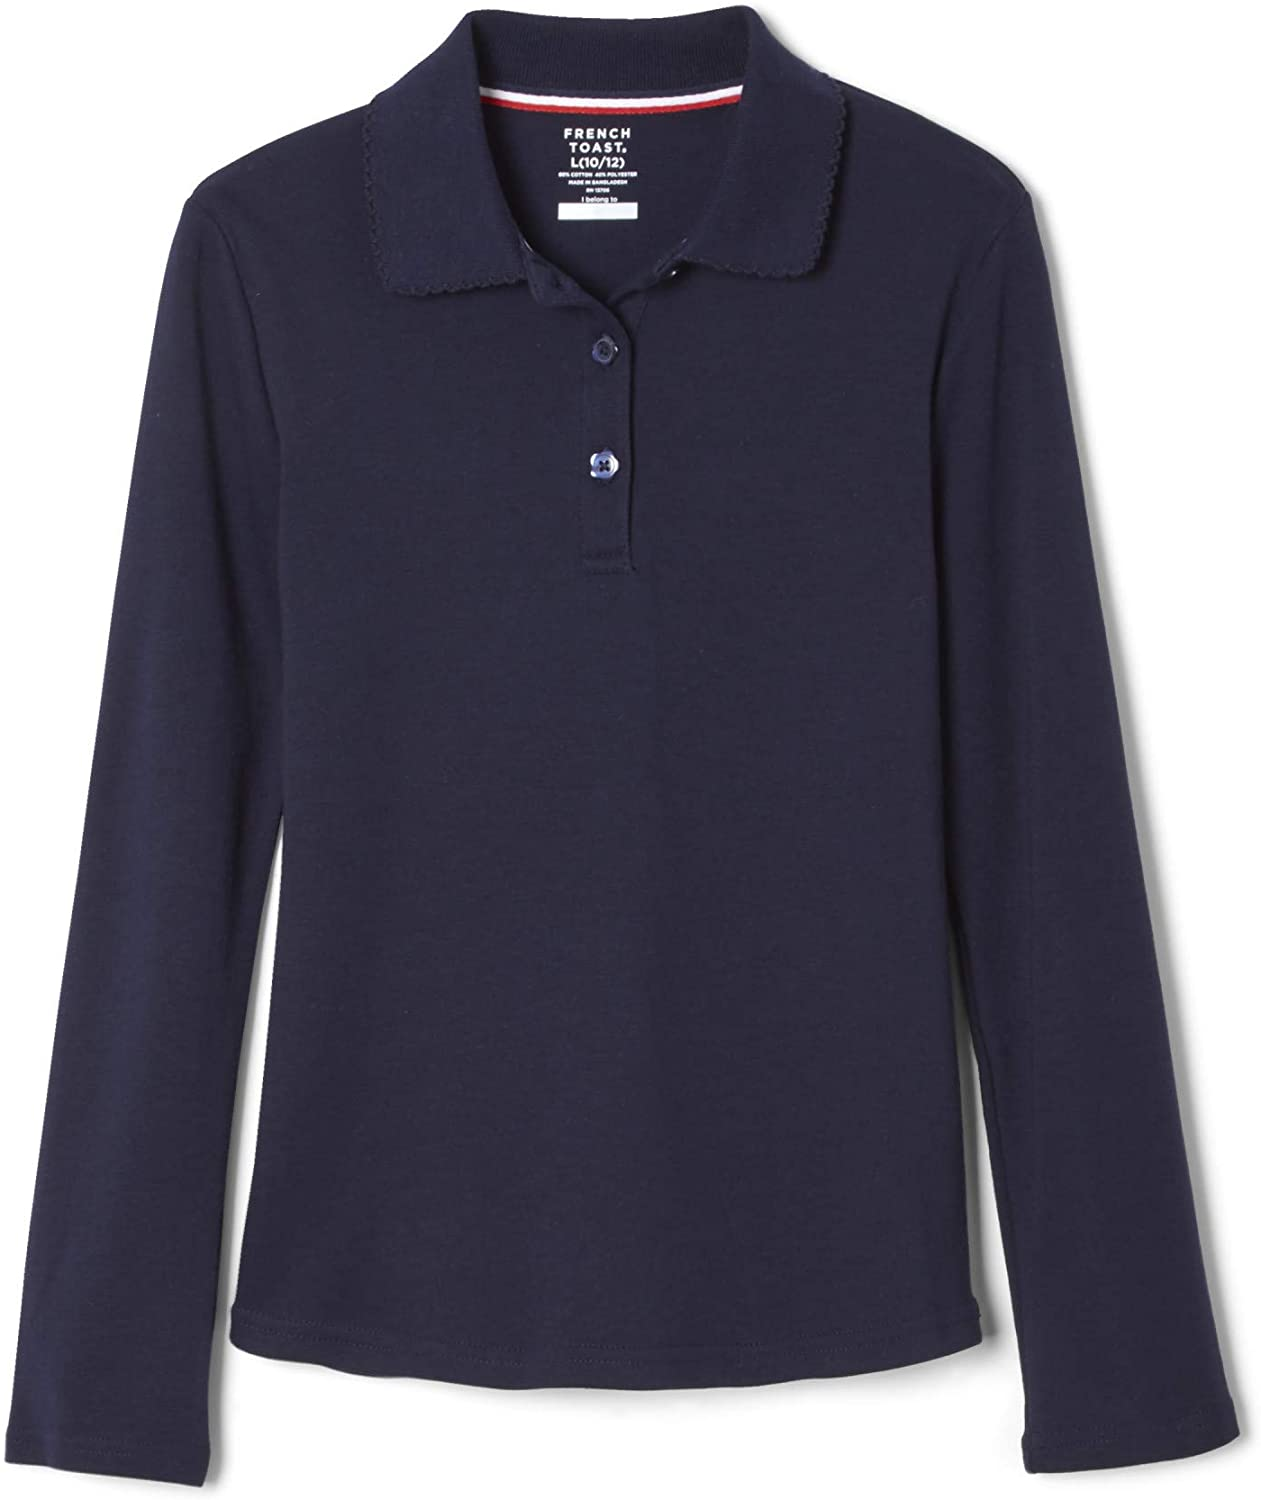 OshKosh BGosh Girls Navy Long Sleeve Polo Uniform Shirt 10